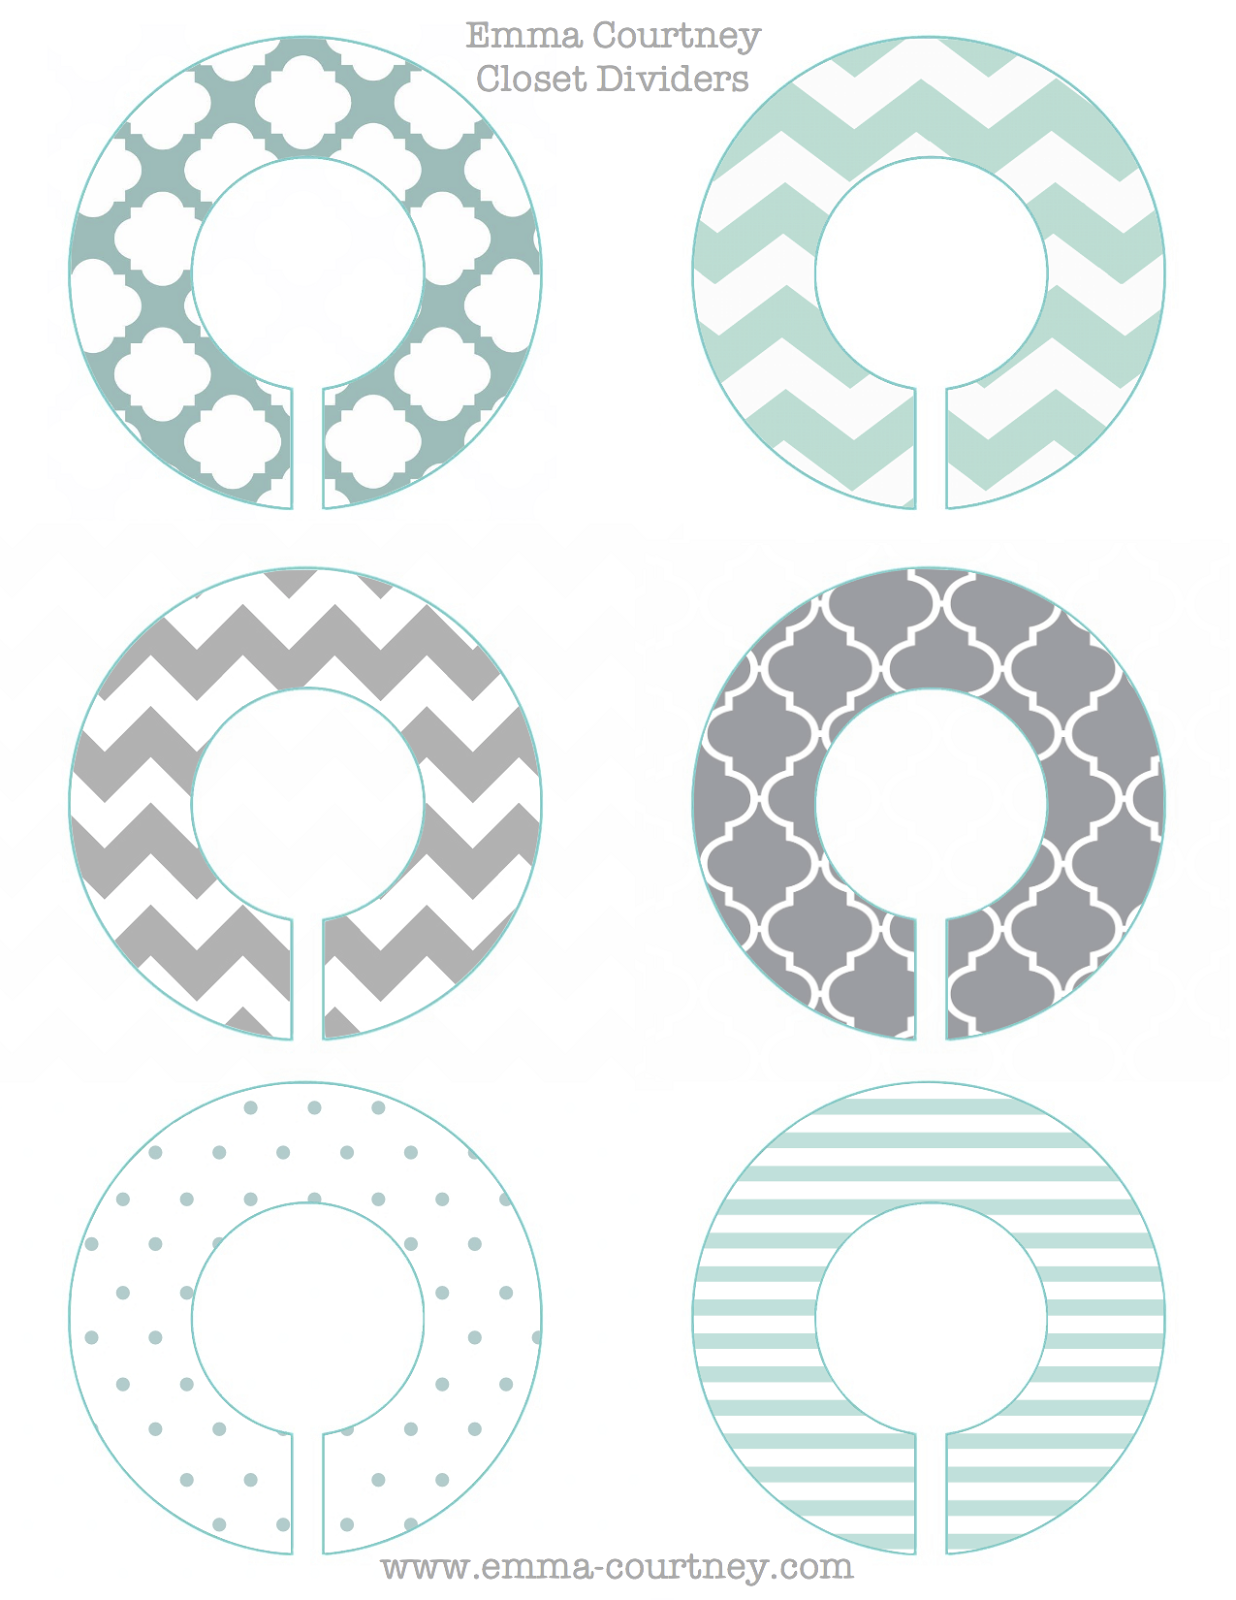 Emma Courtney Closet Dividers Printable